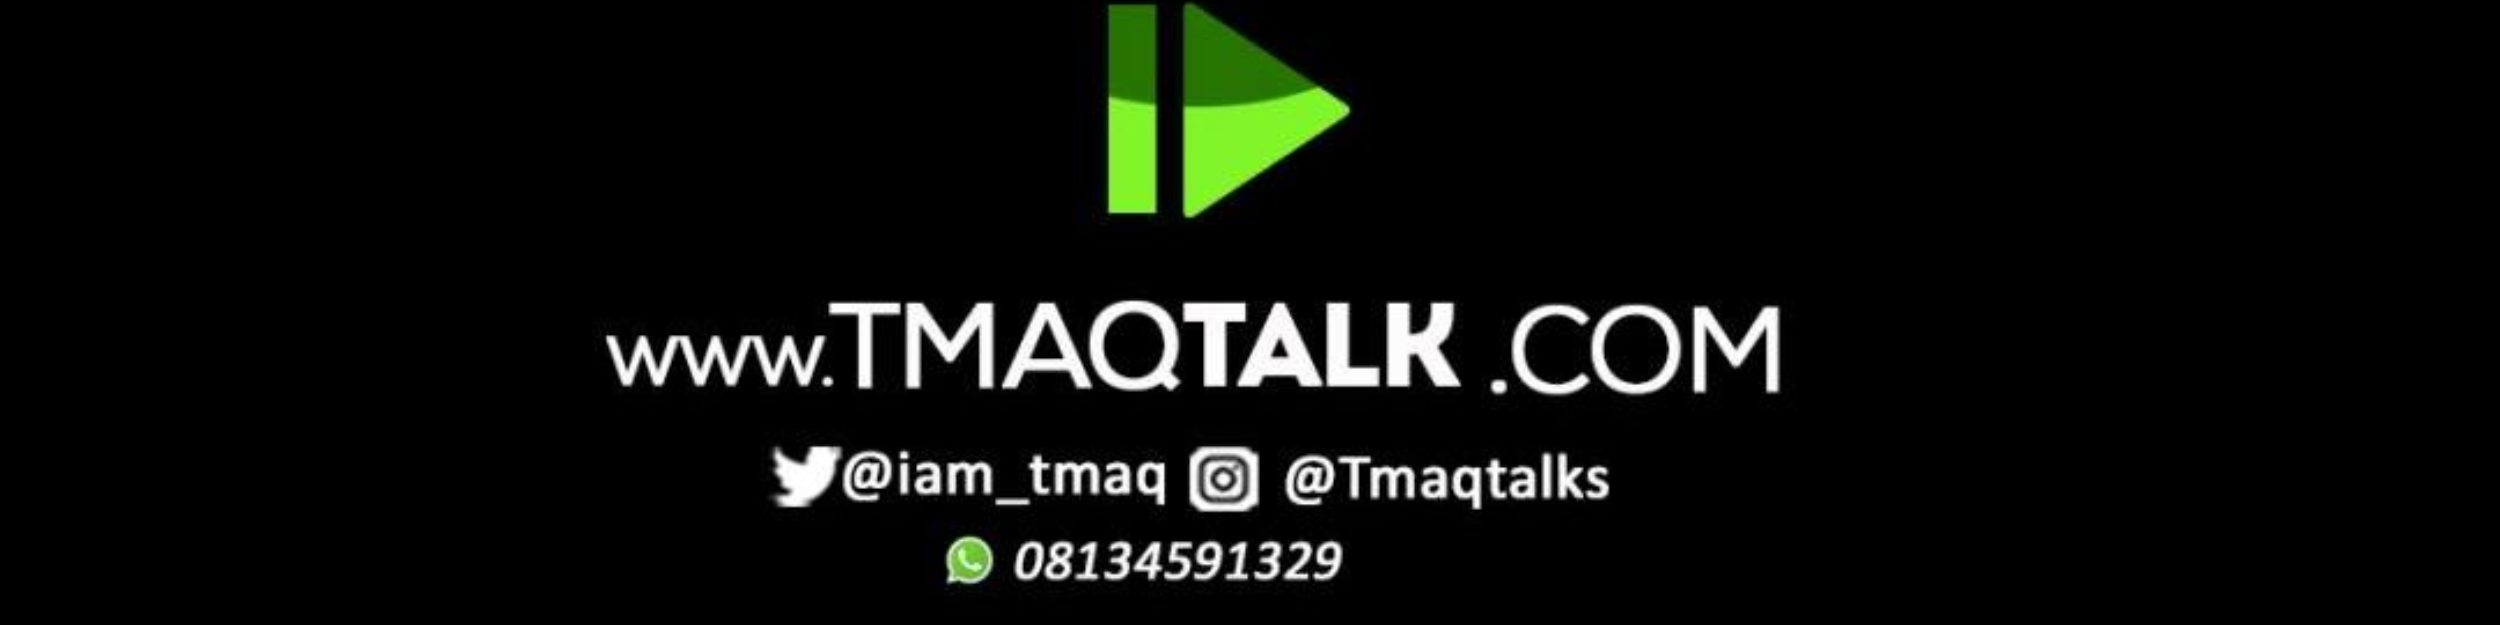 Tmaqtalk Blog